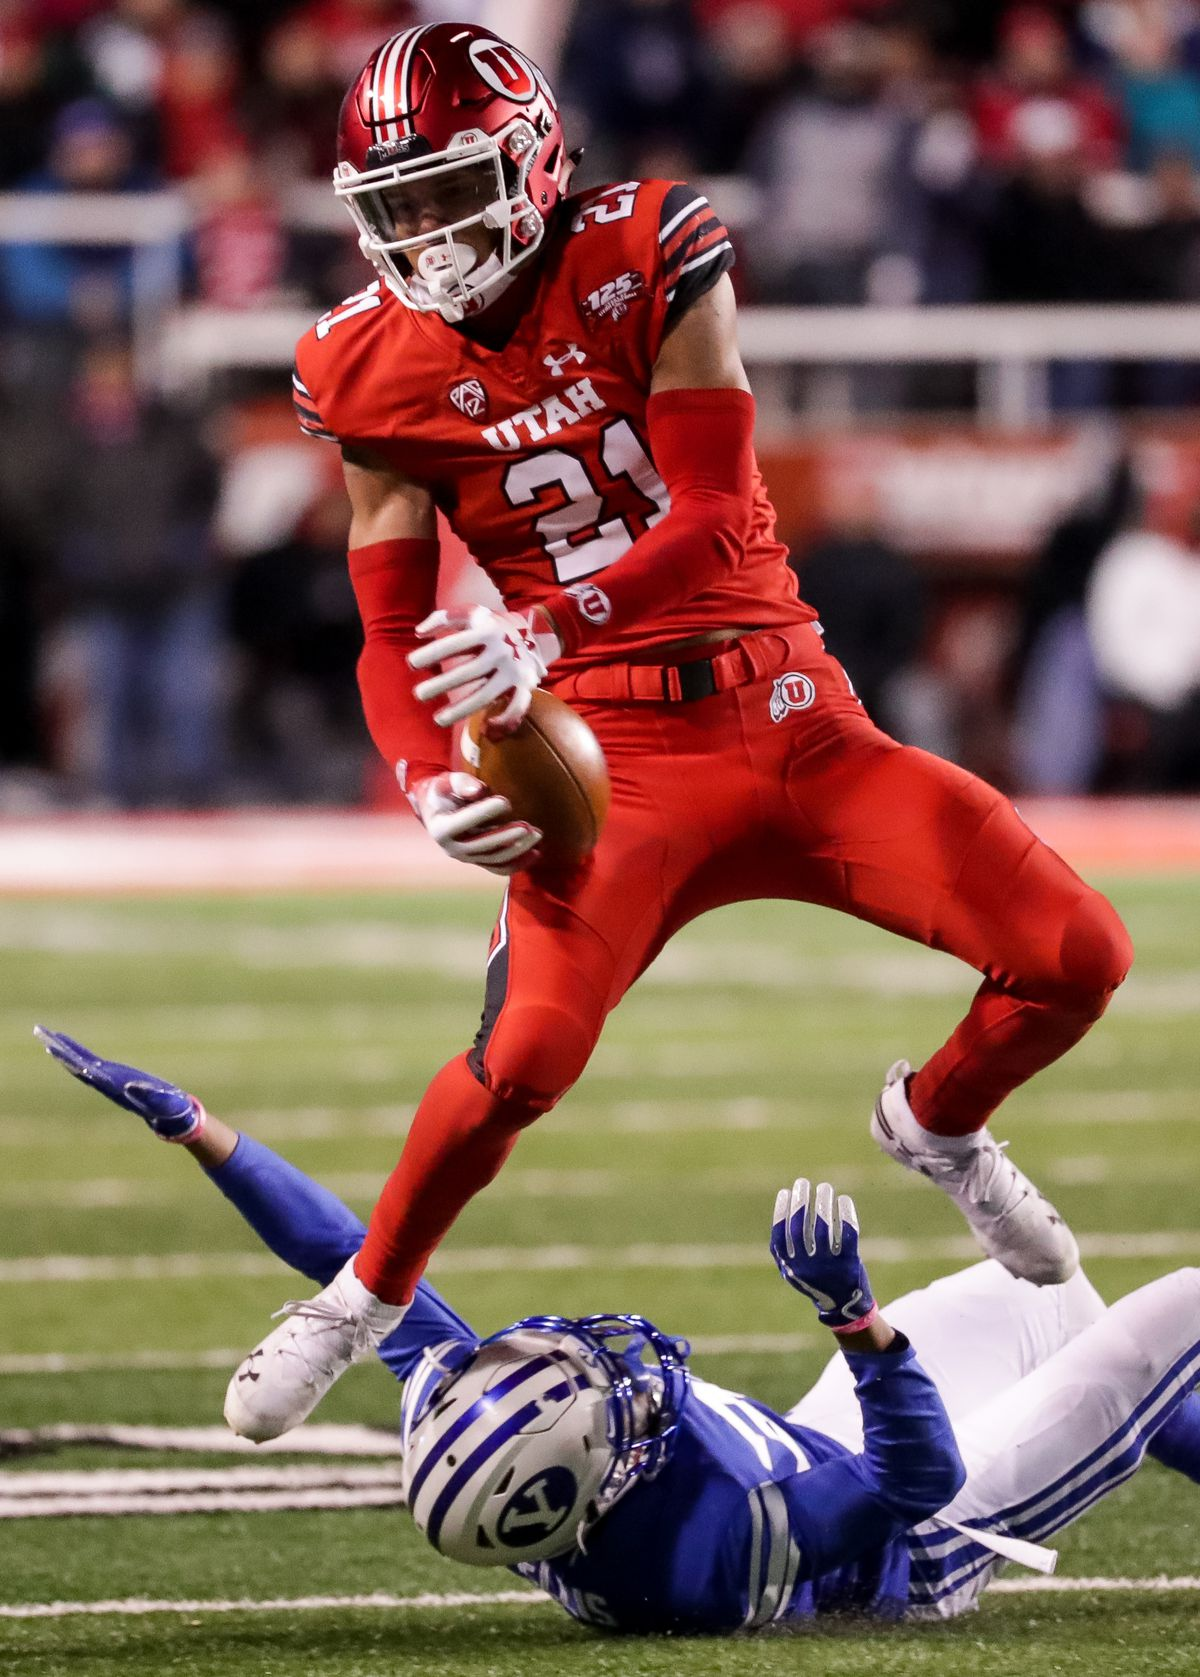 Utah Utes wide receiver Solomon Enis (21) makes a reception over Brigham Young Cougars defensive back Keenan Ellis (30) during the game at Rice-Eccles Stadium in Salt Lake City on Saturday, Nov. 24, 2018.